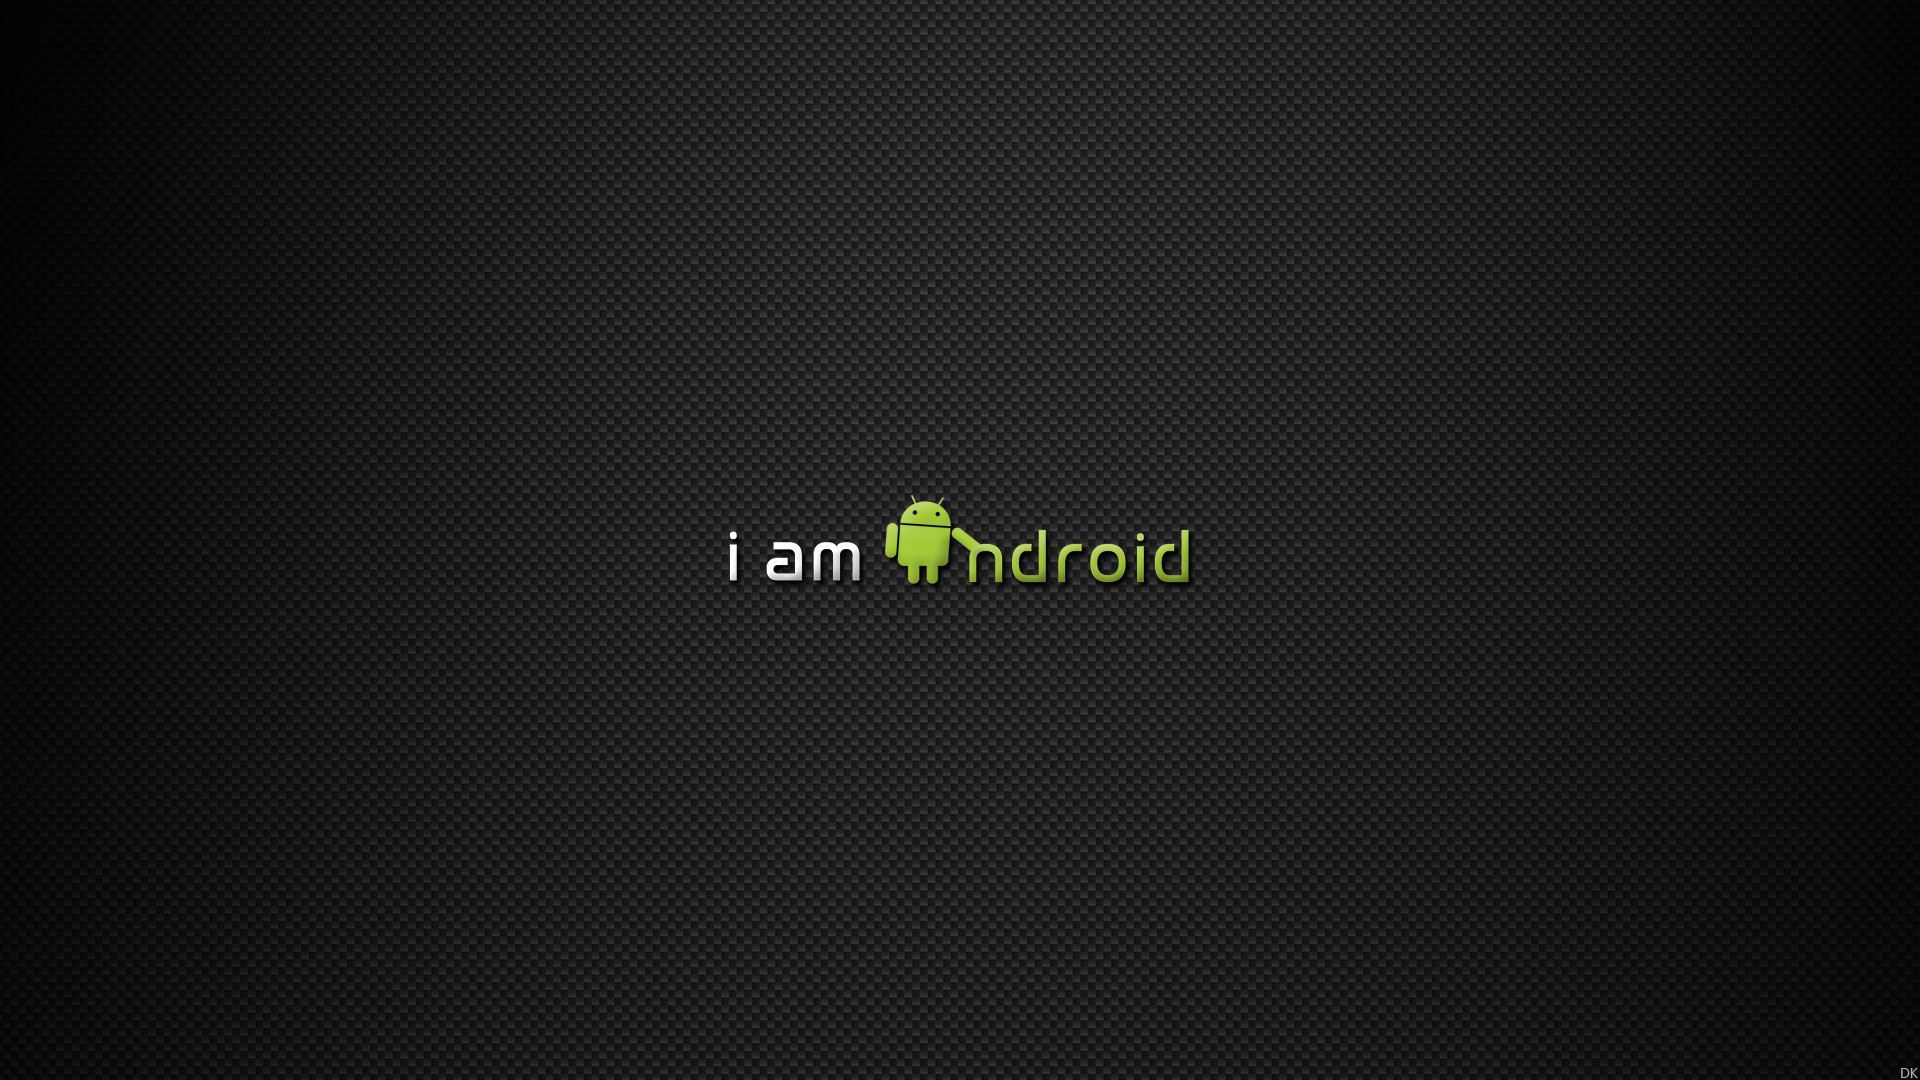 50 black wallpaper in fhd for free download for android desktop